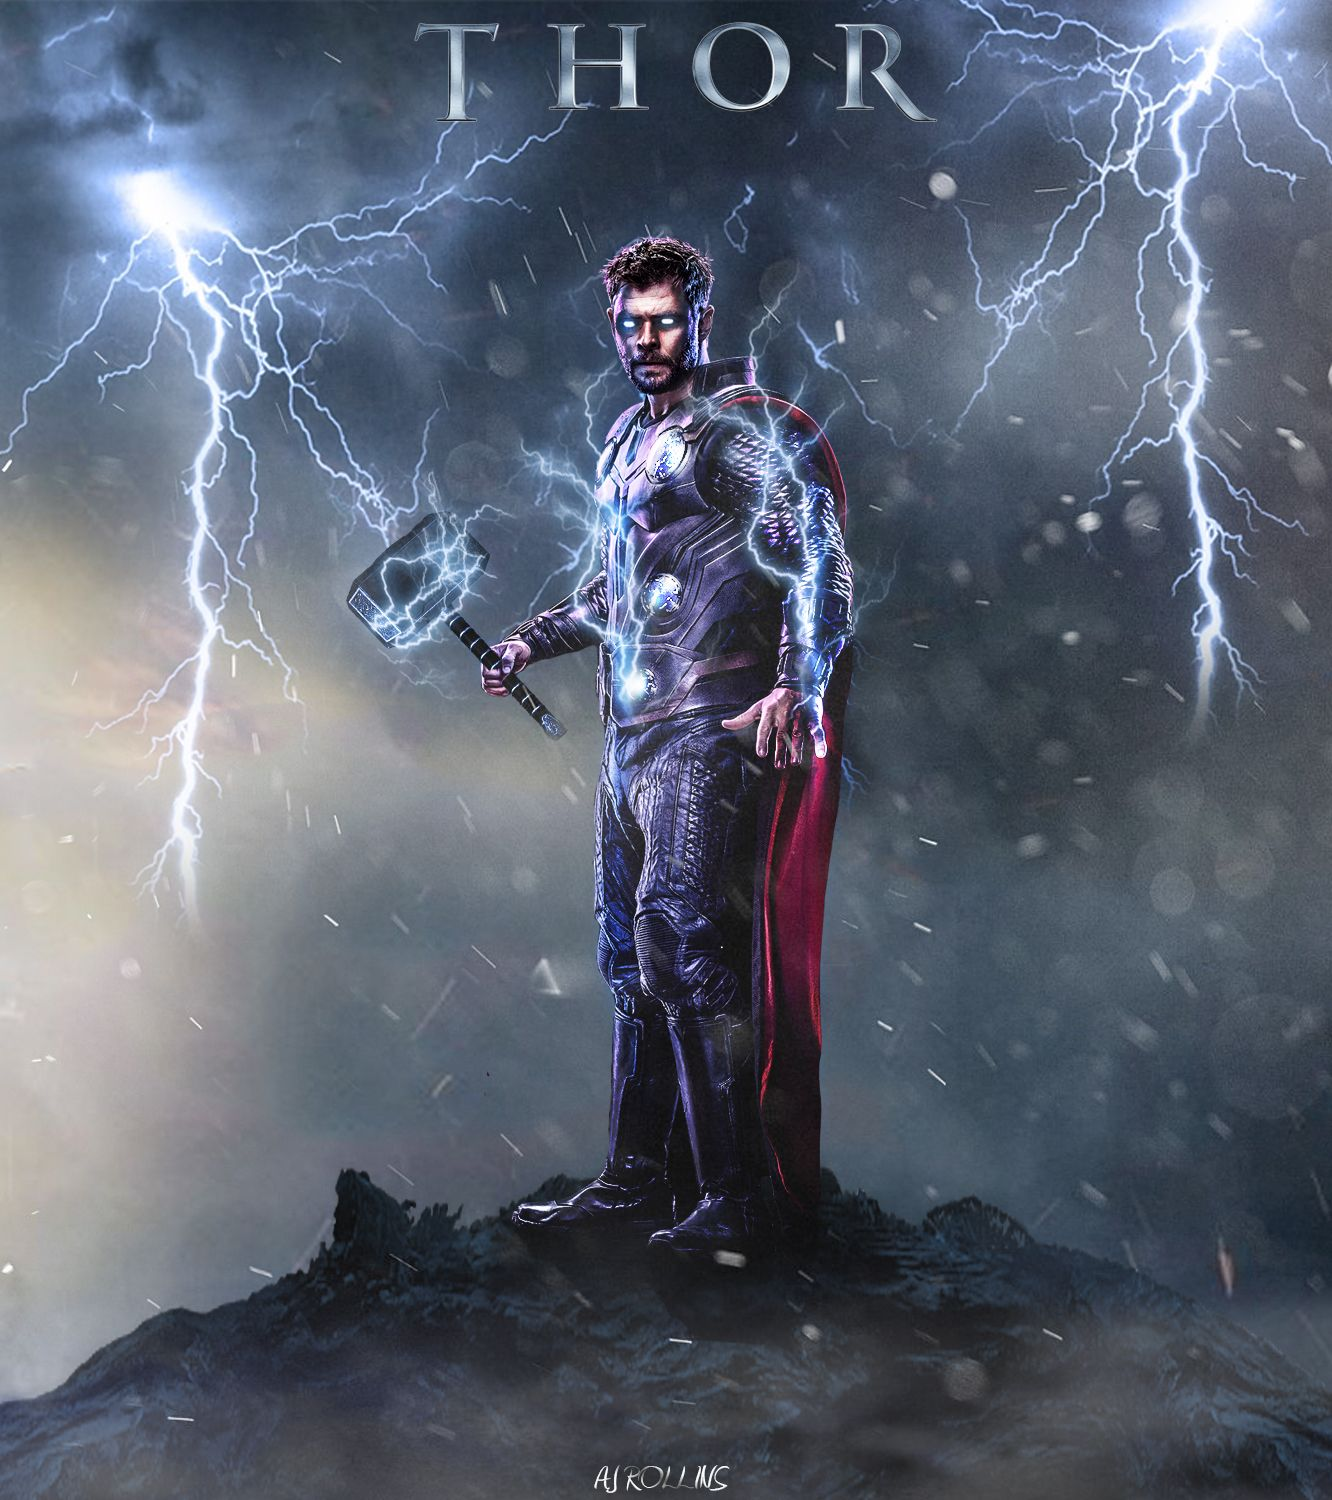 Thor Lightning Wallpapers posted by John Thompson